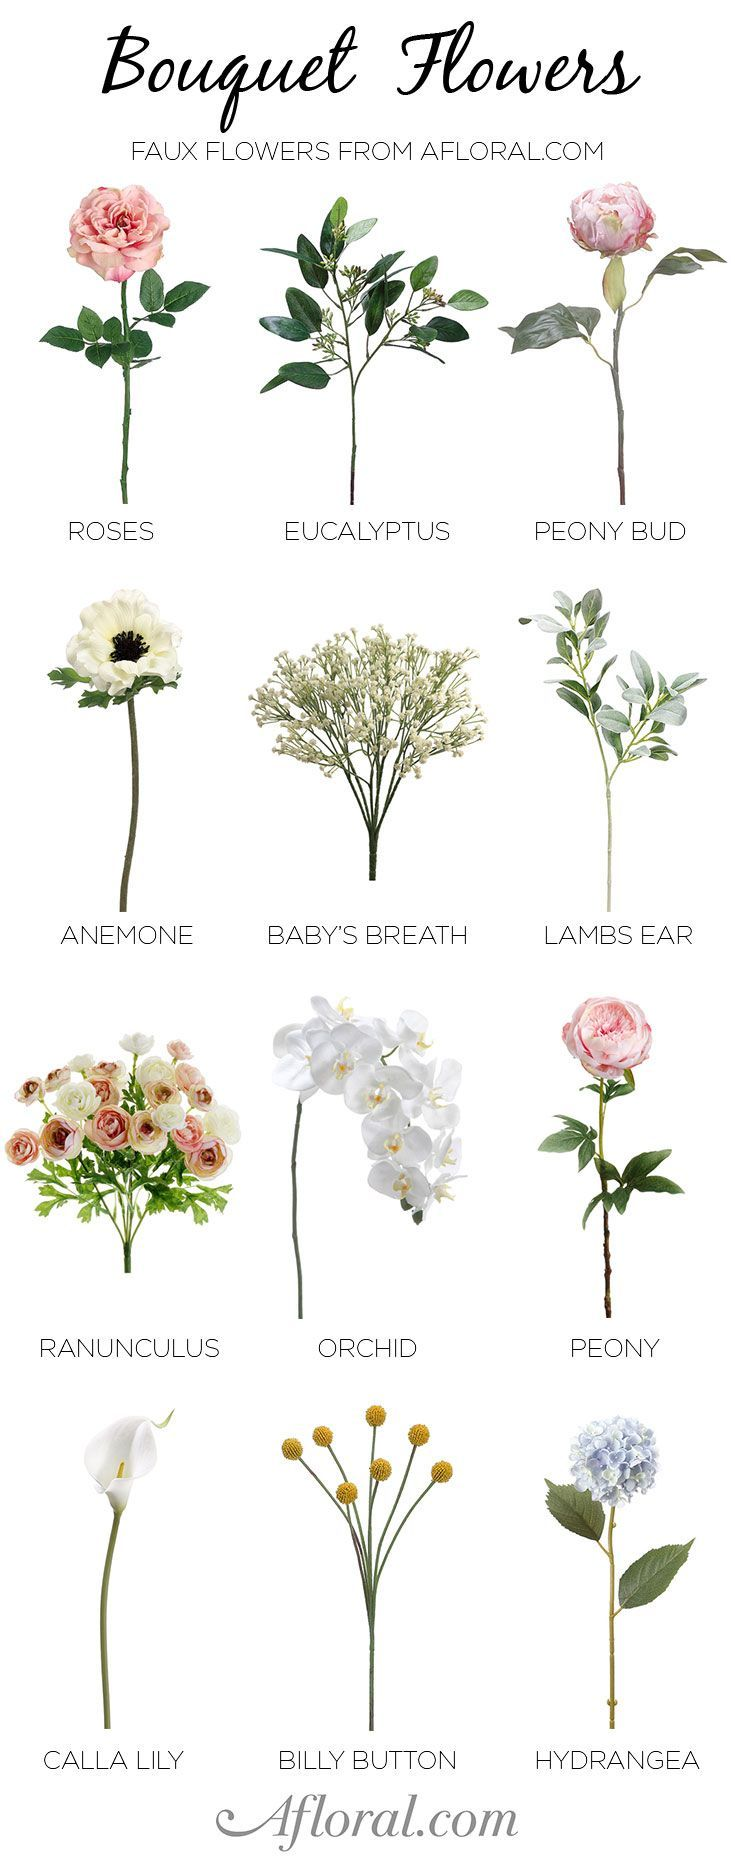 DIY Wedding Bouquets start with high-quality artificial flowers from Afloral.com.  Shop for affordable, long-lasting silk flower stems and find easy DIY tutorials.